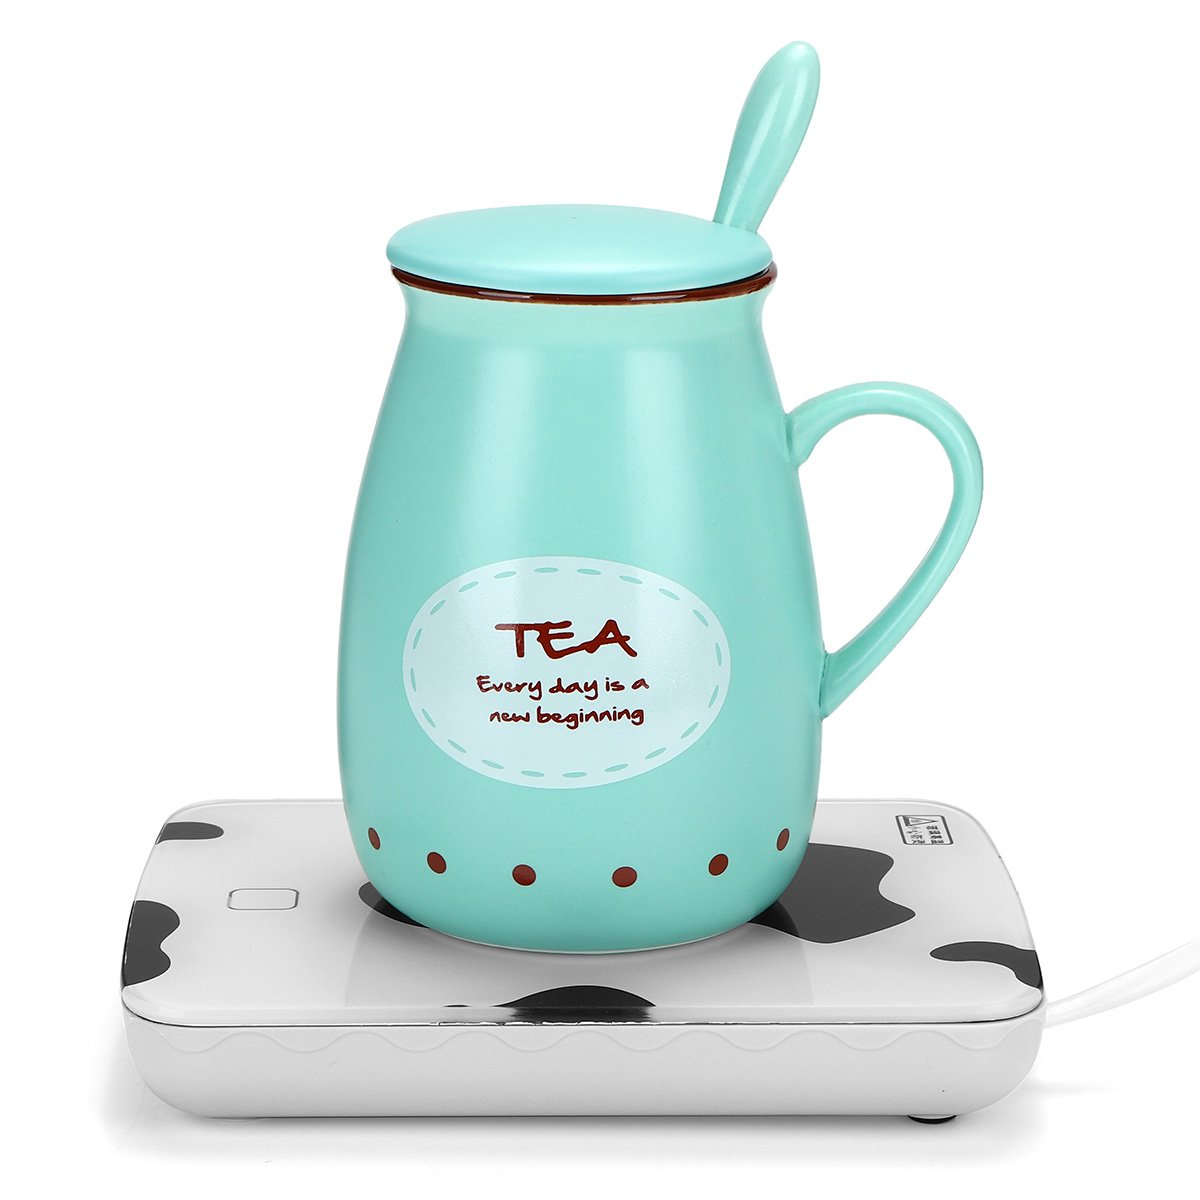 Portable Coffee Heater, KISENG Mug Cup Beverage Warmer Desktop Portable Powered Heater Plate Safely Warms for Milk Tea Coffee